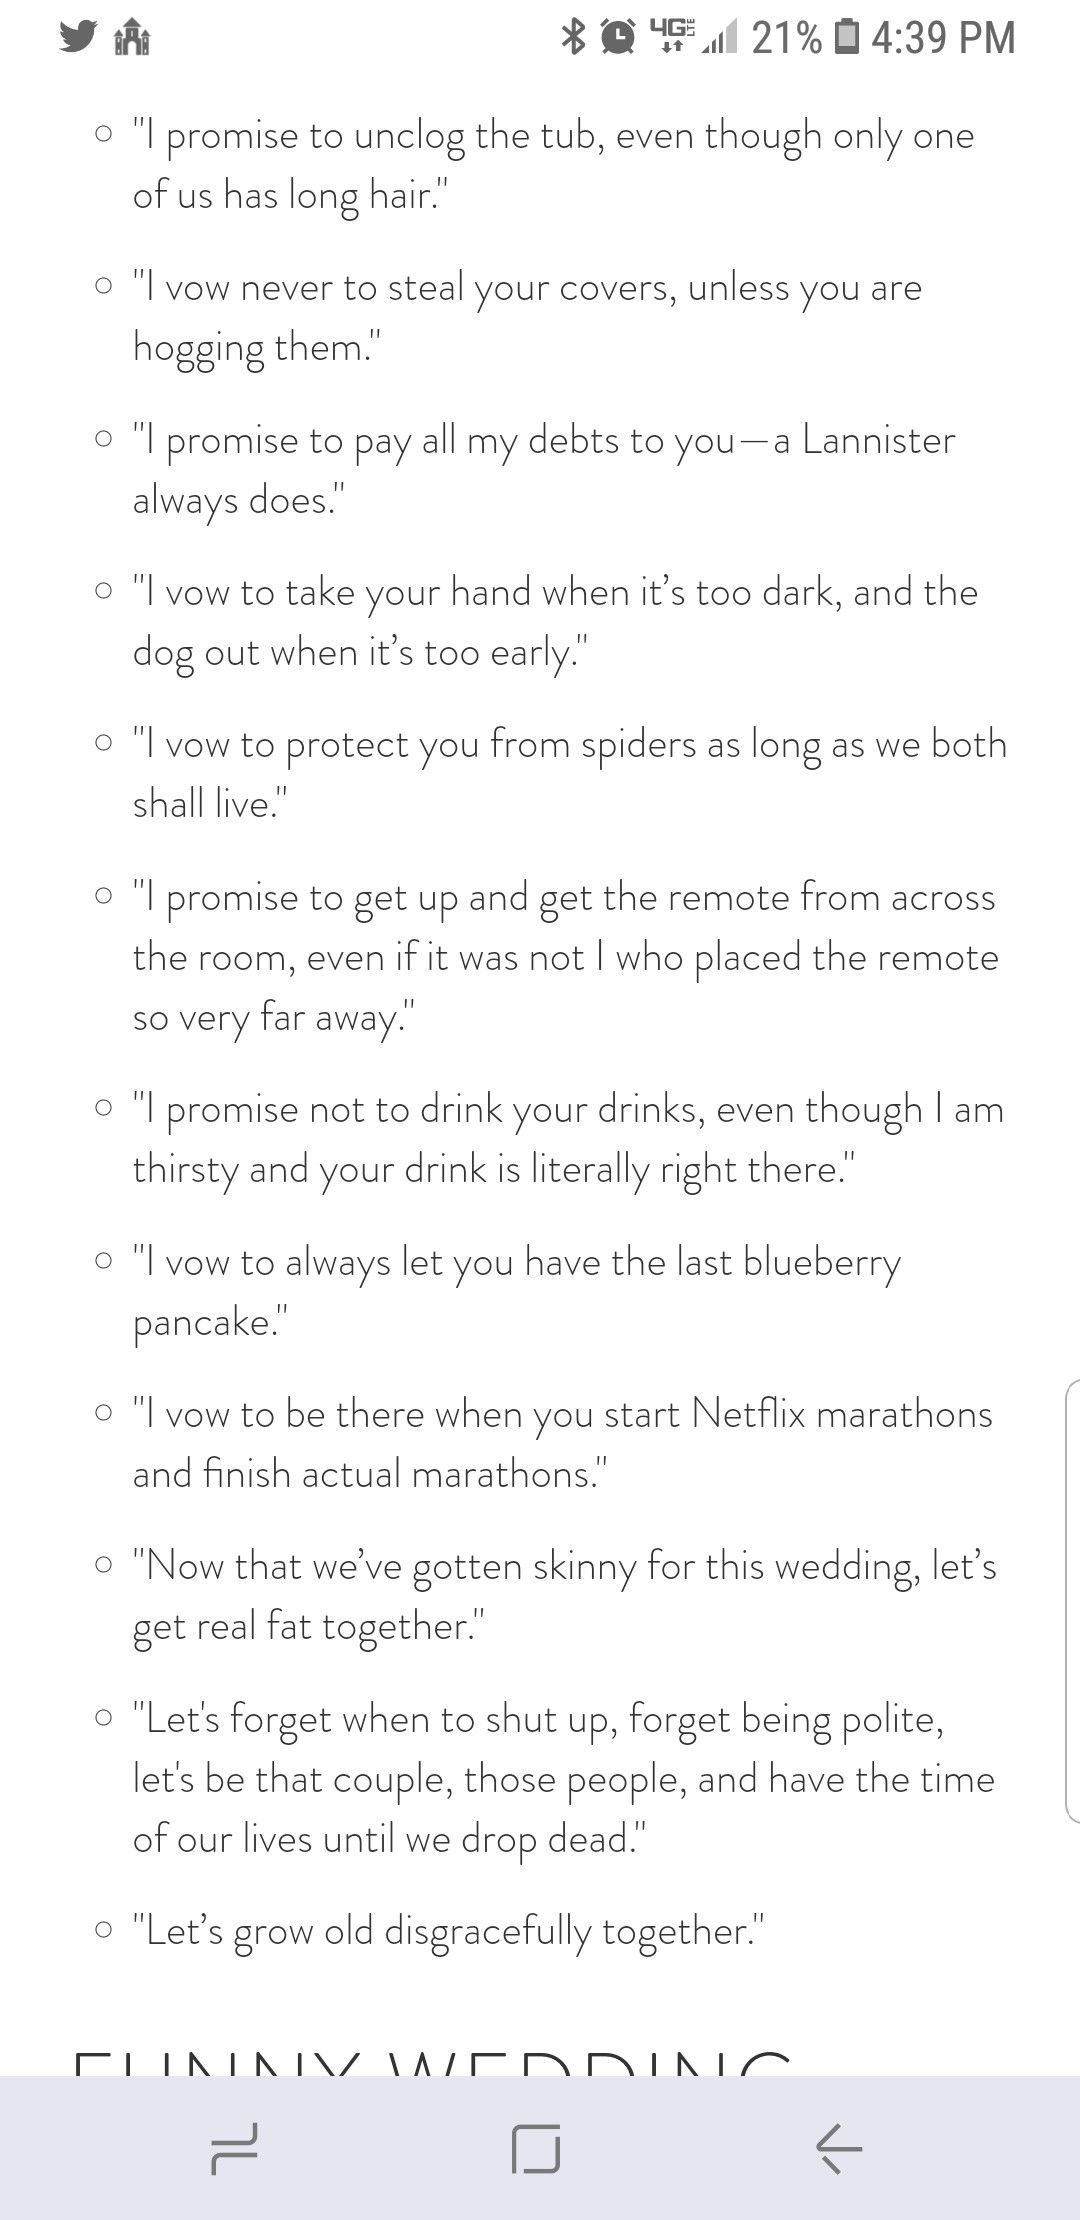 Vows funny Wedding vows to husband, Funny wedding vows